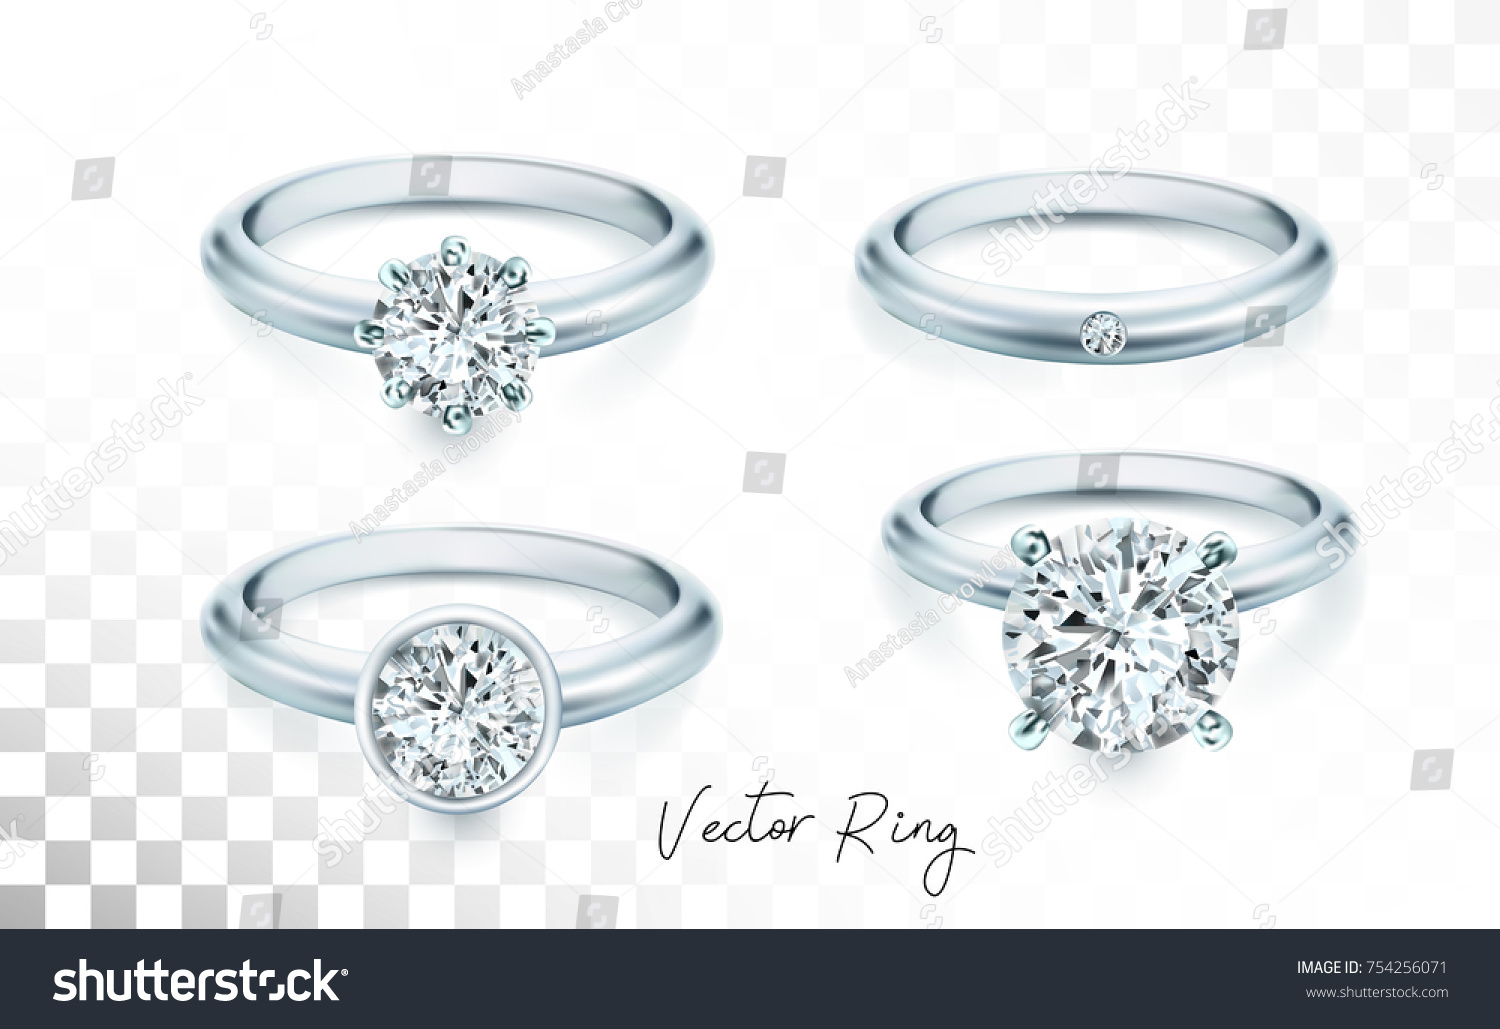 Wedding Rings Set Silver Palladium Metal Stock Vector Royalty Free